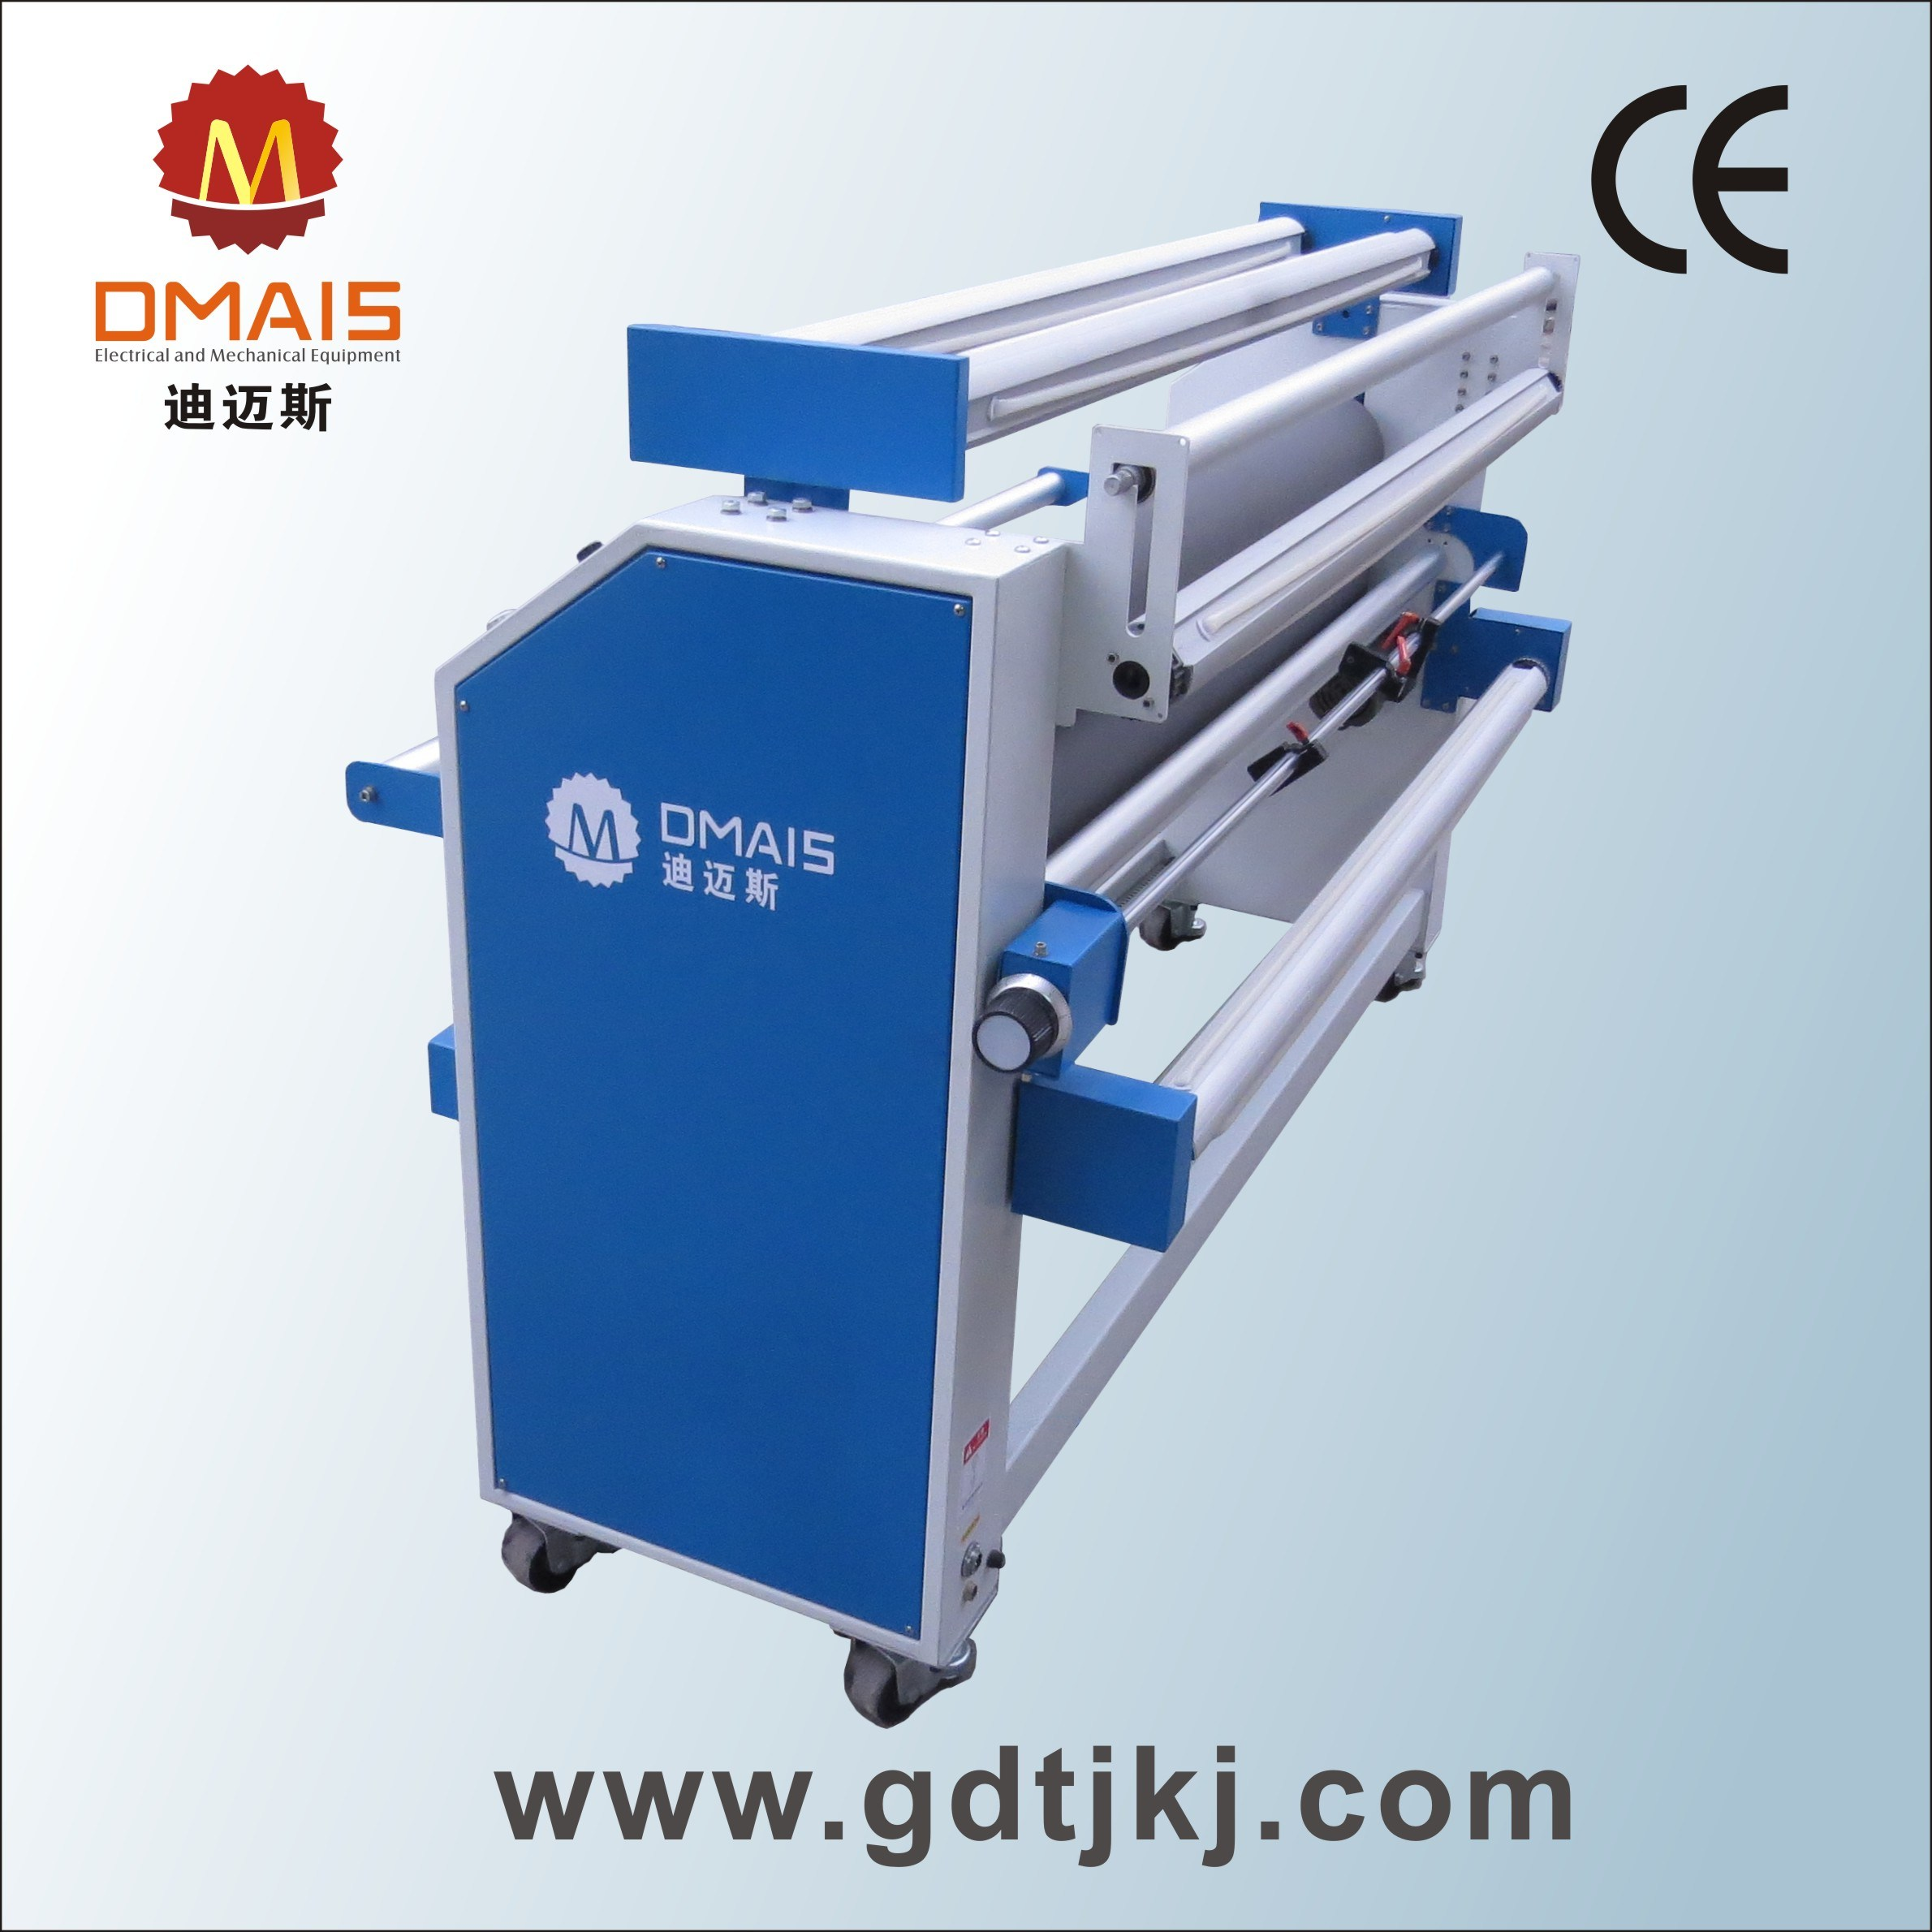 Full-Auto Mutil-Function Hot Laminator with Cutter 30m/Min